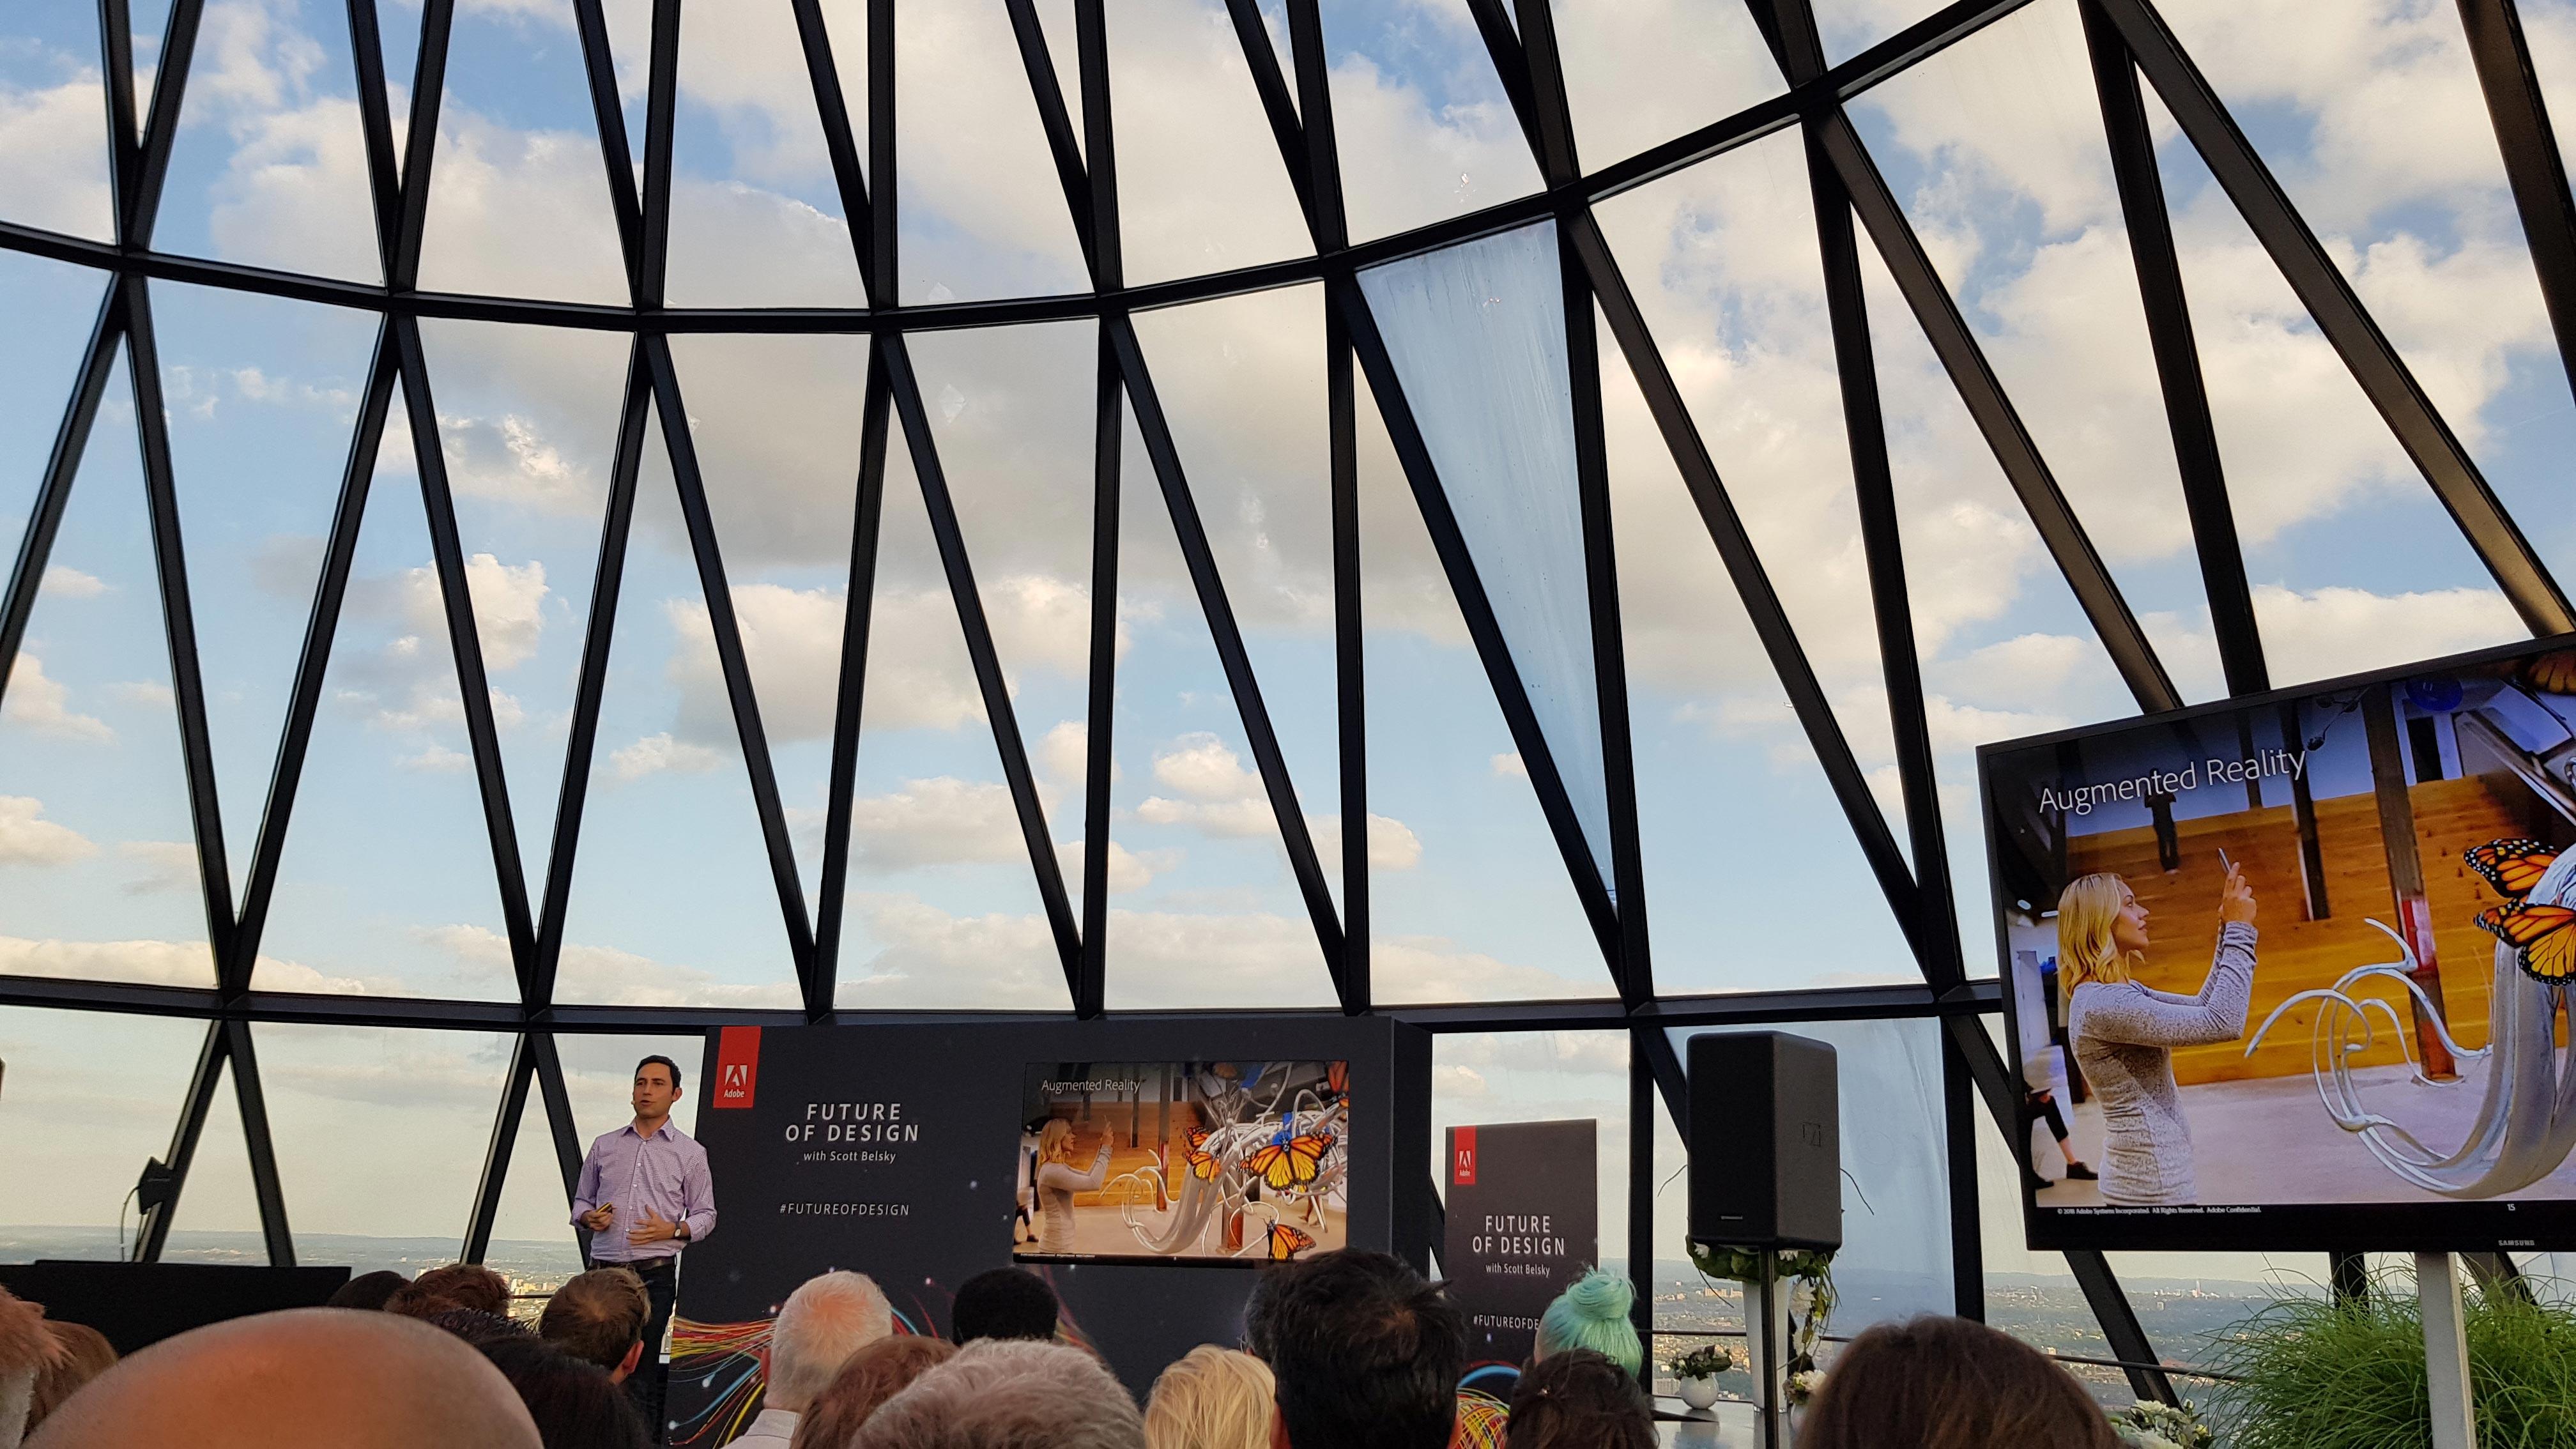 scott belsky at the gherkin in London